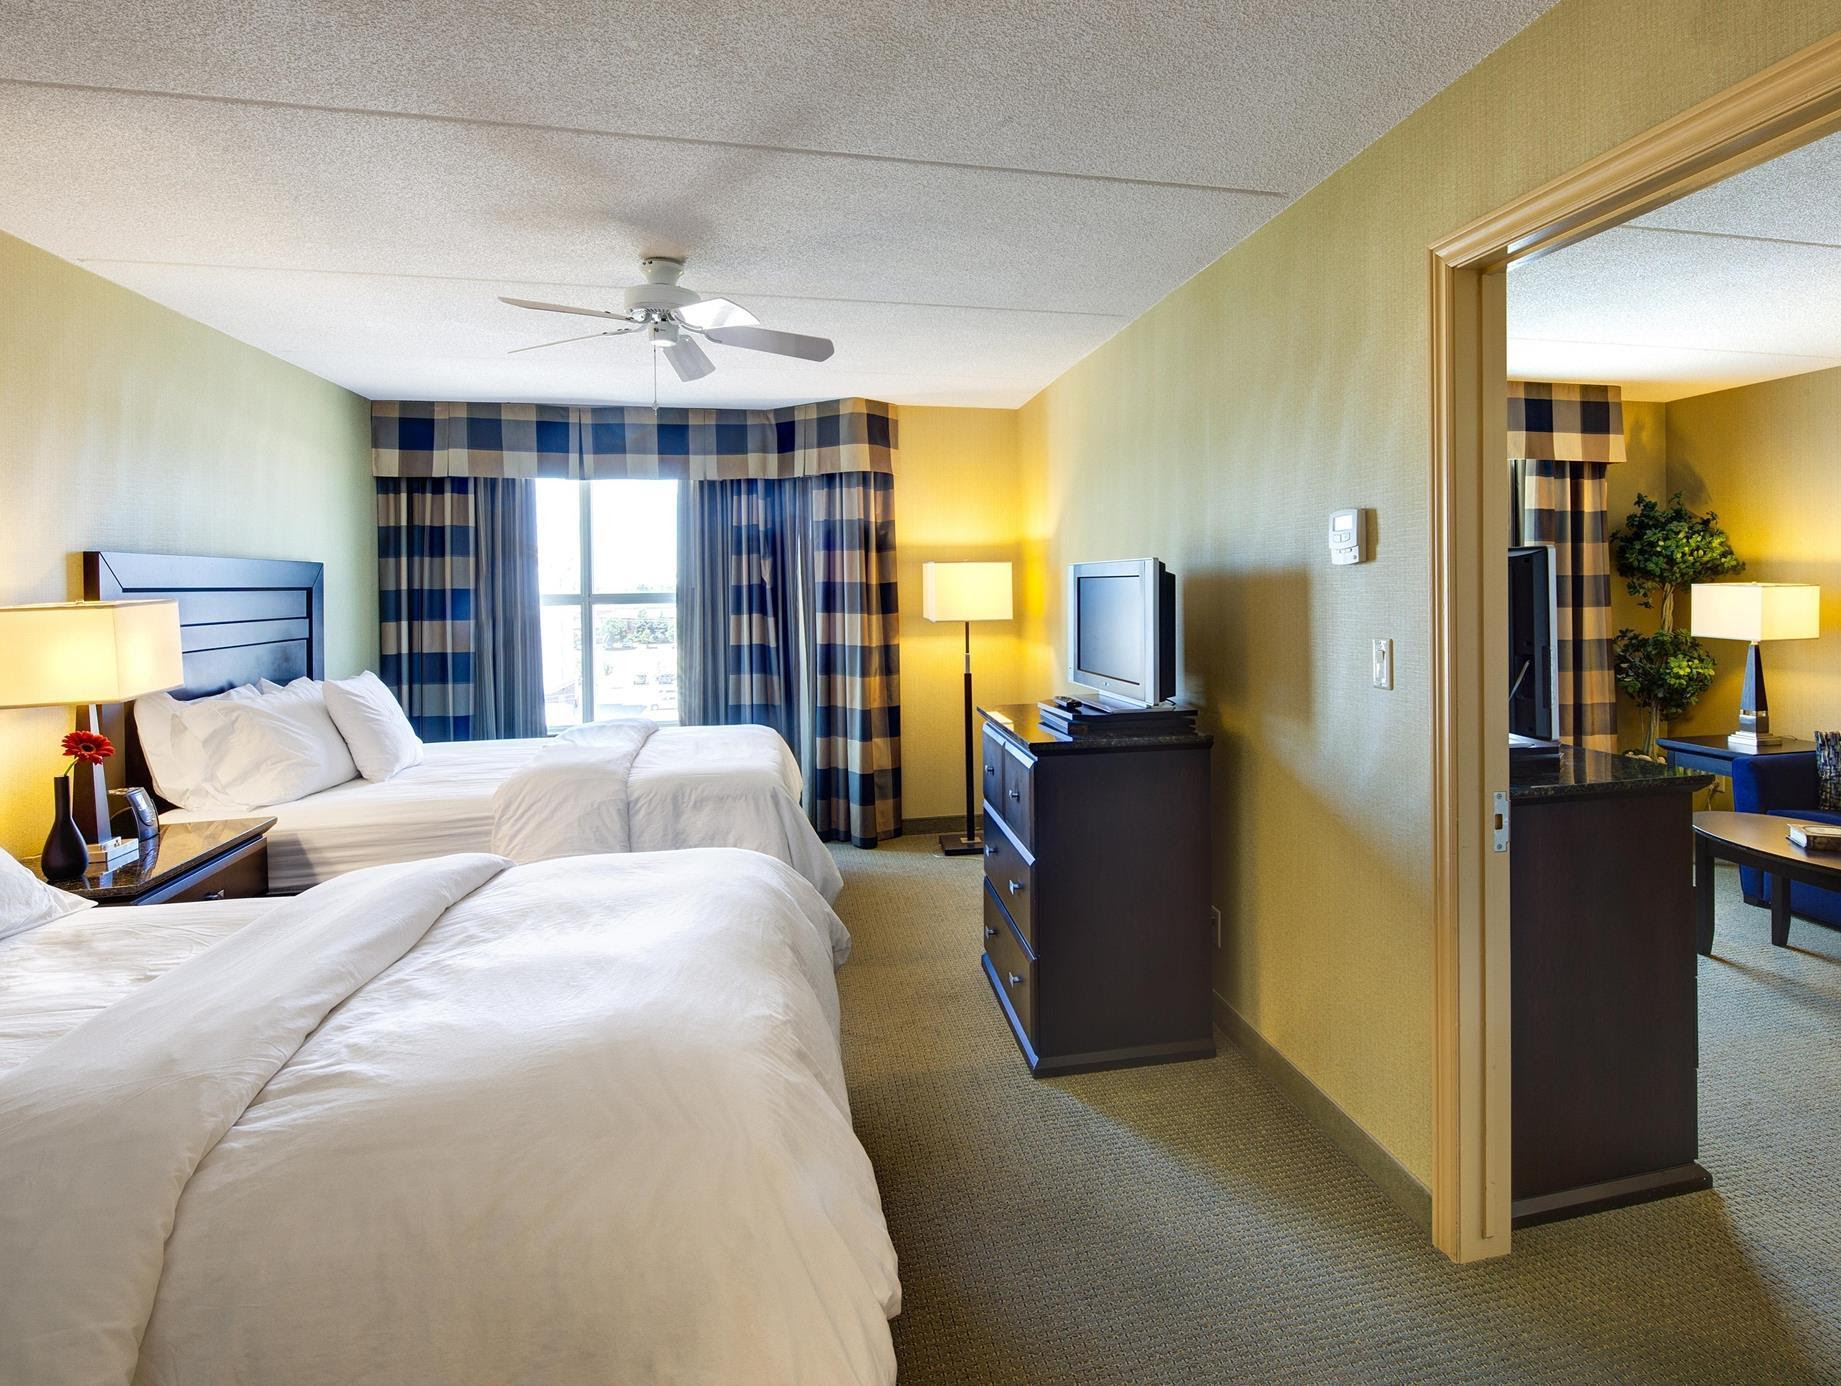 Review Homewood Suites by Hilton London Ontario